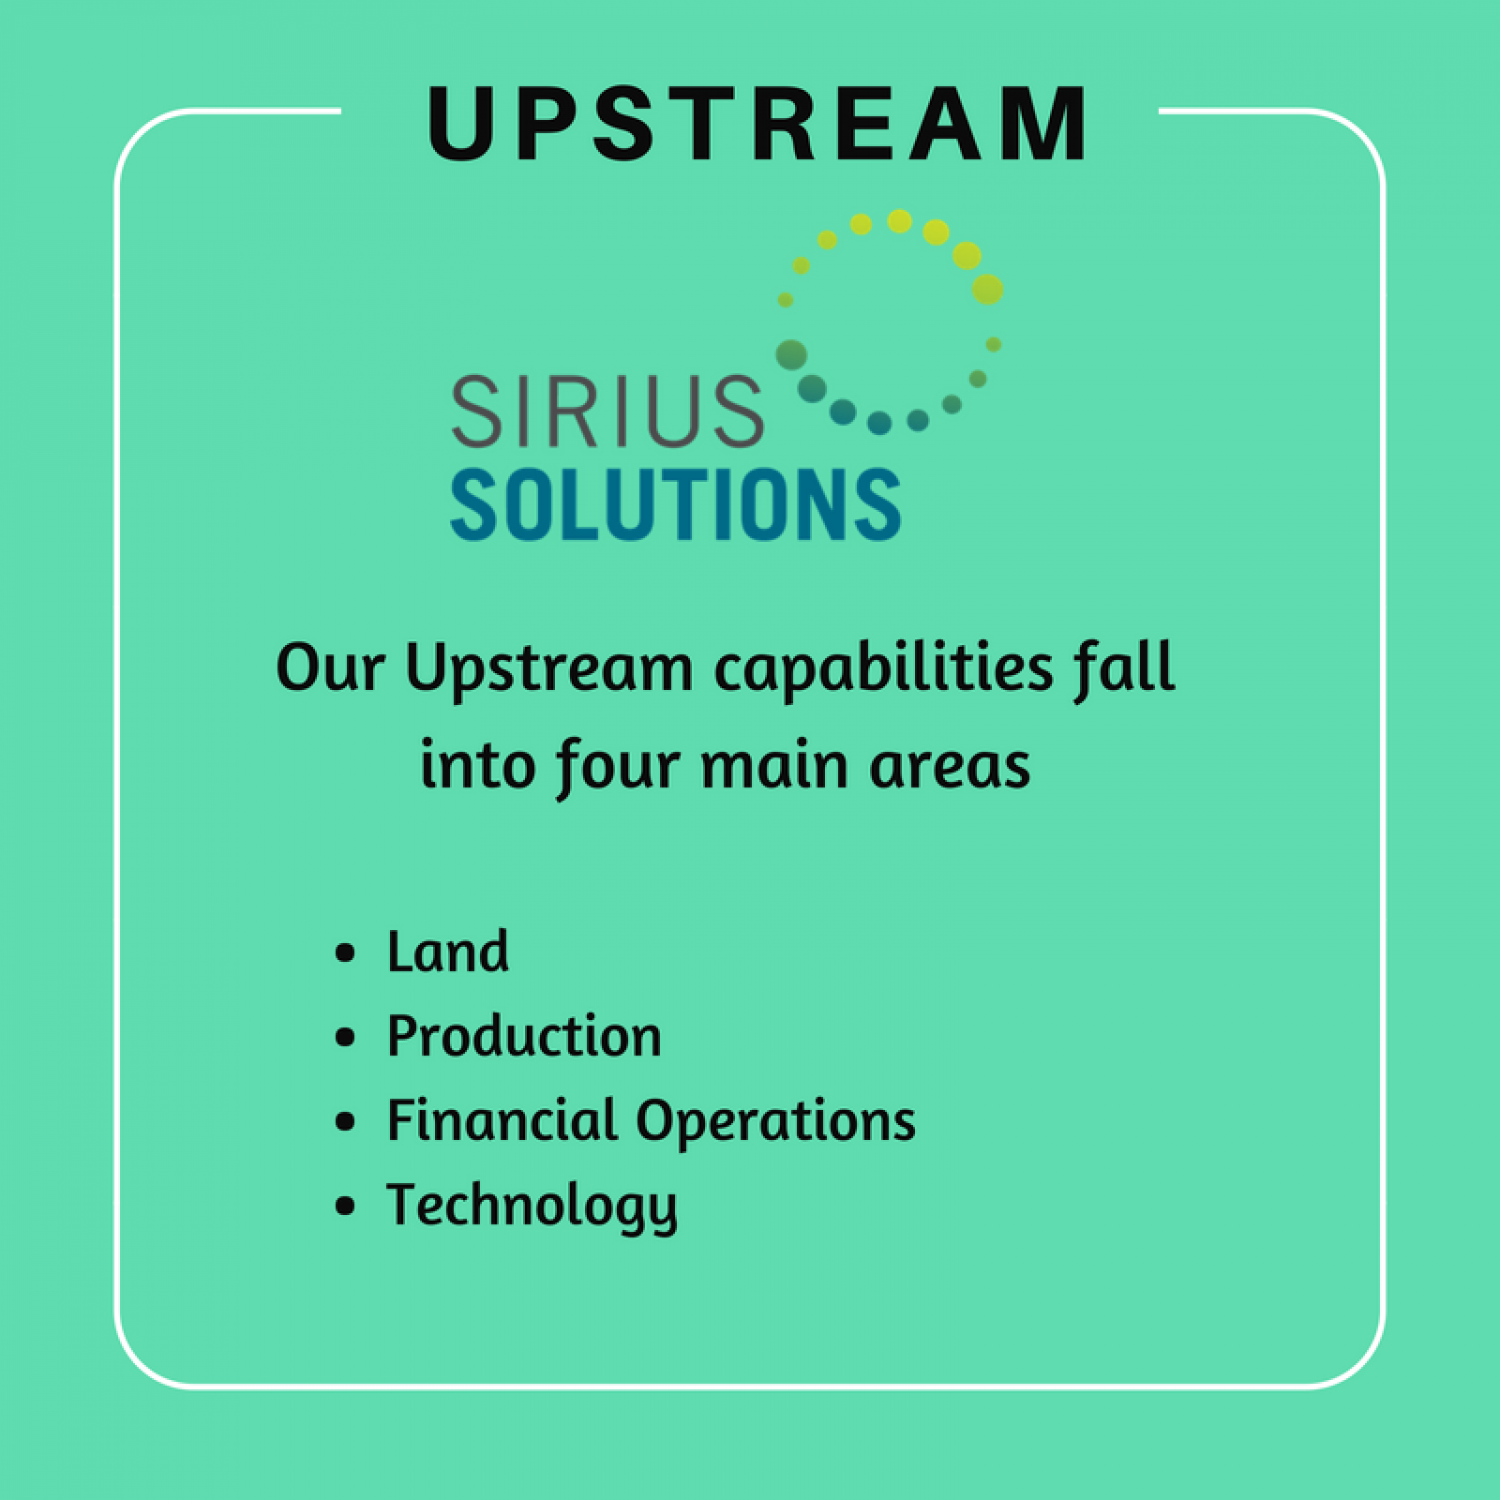 Upstream Capabilities - Sirius Solution Infographic